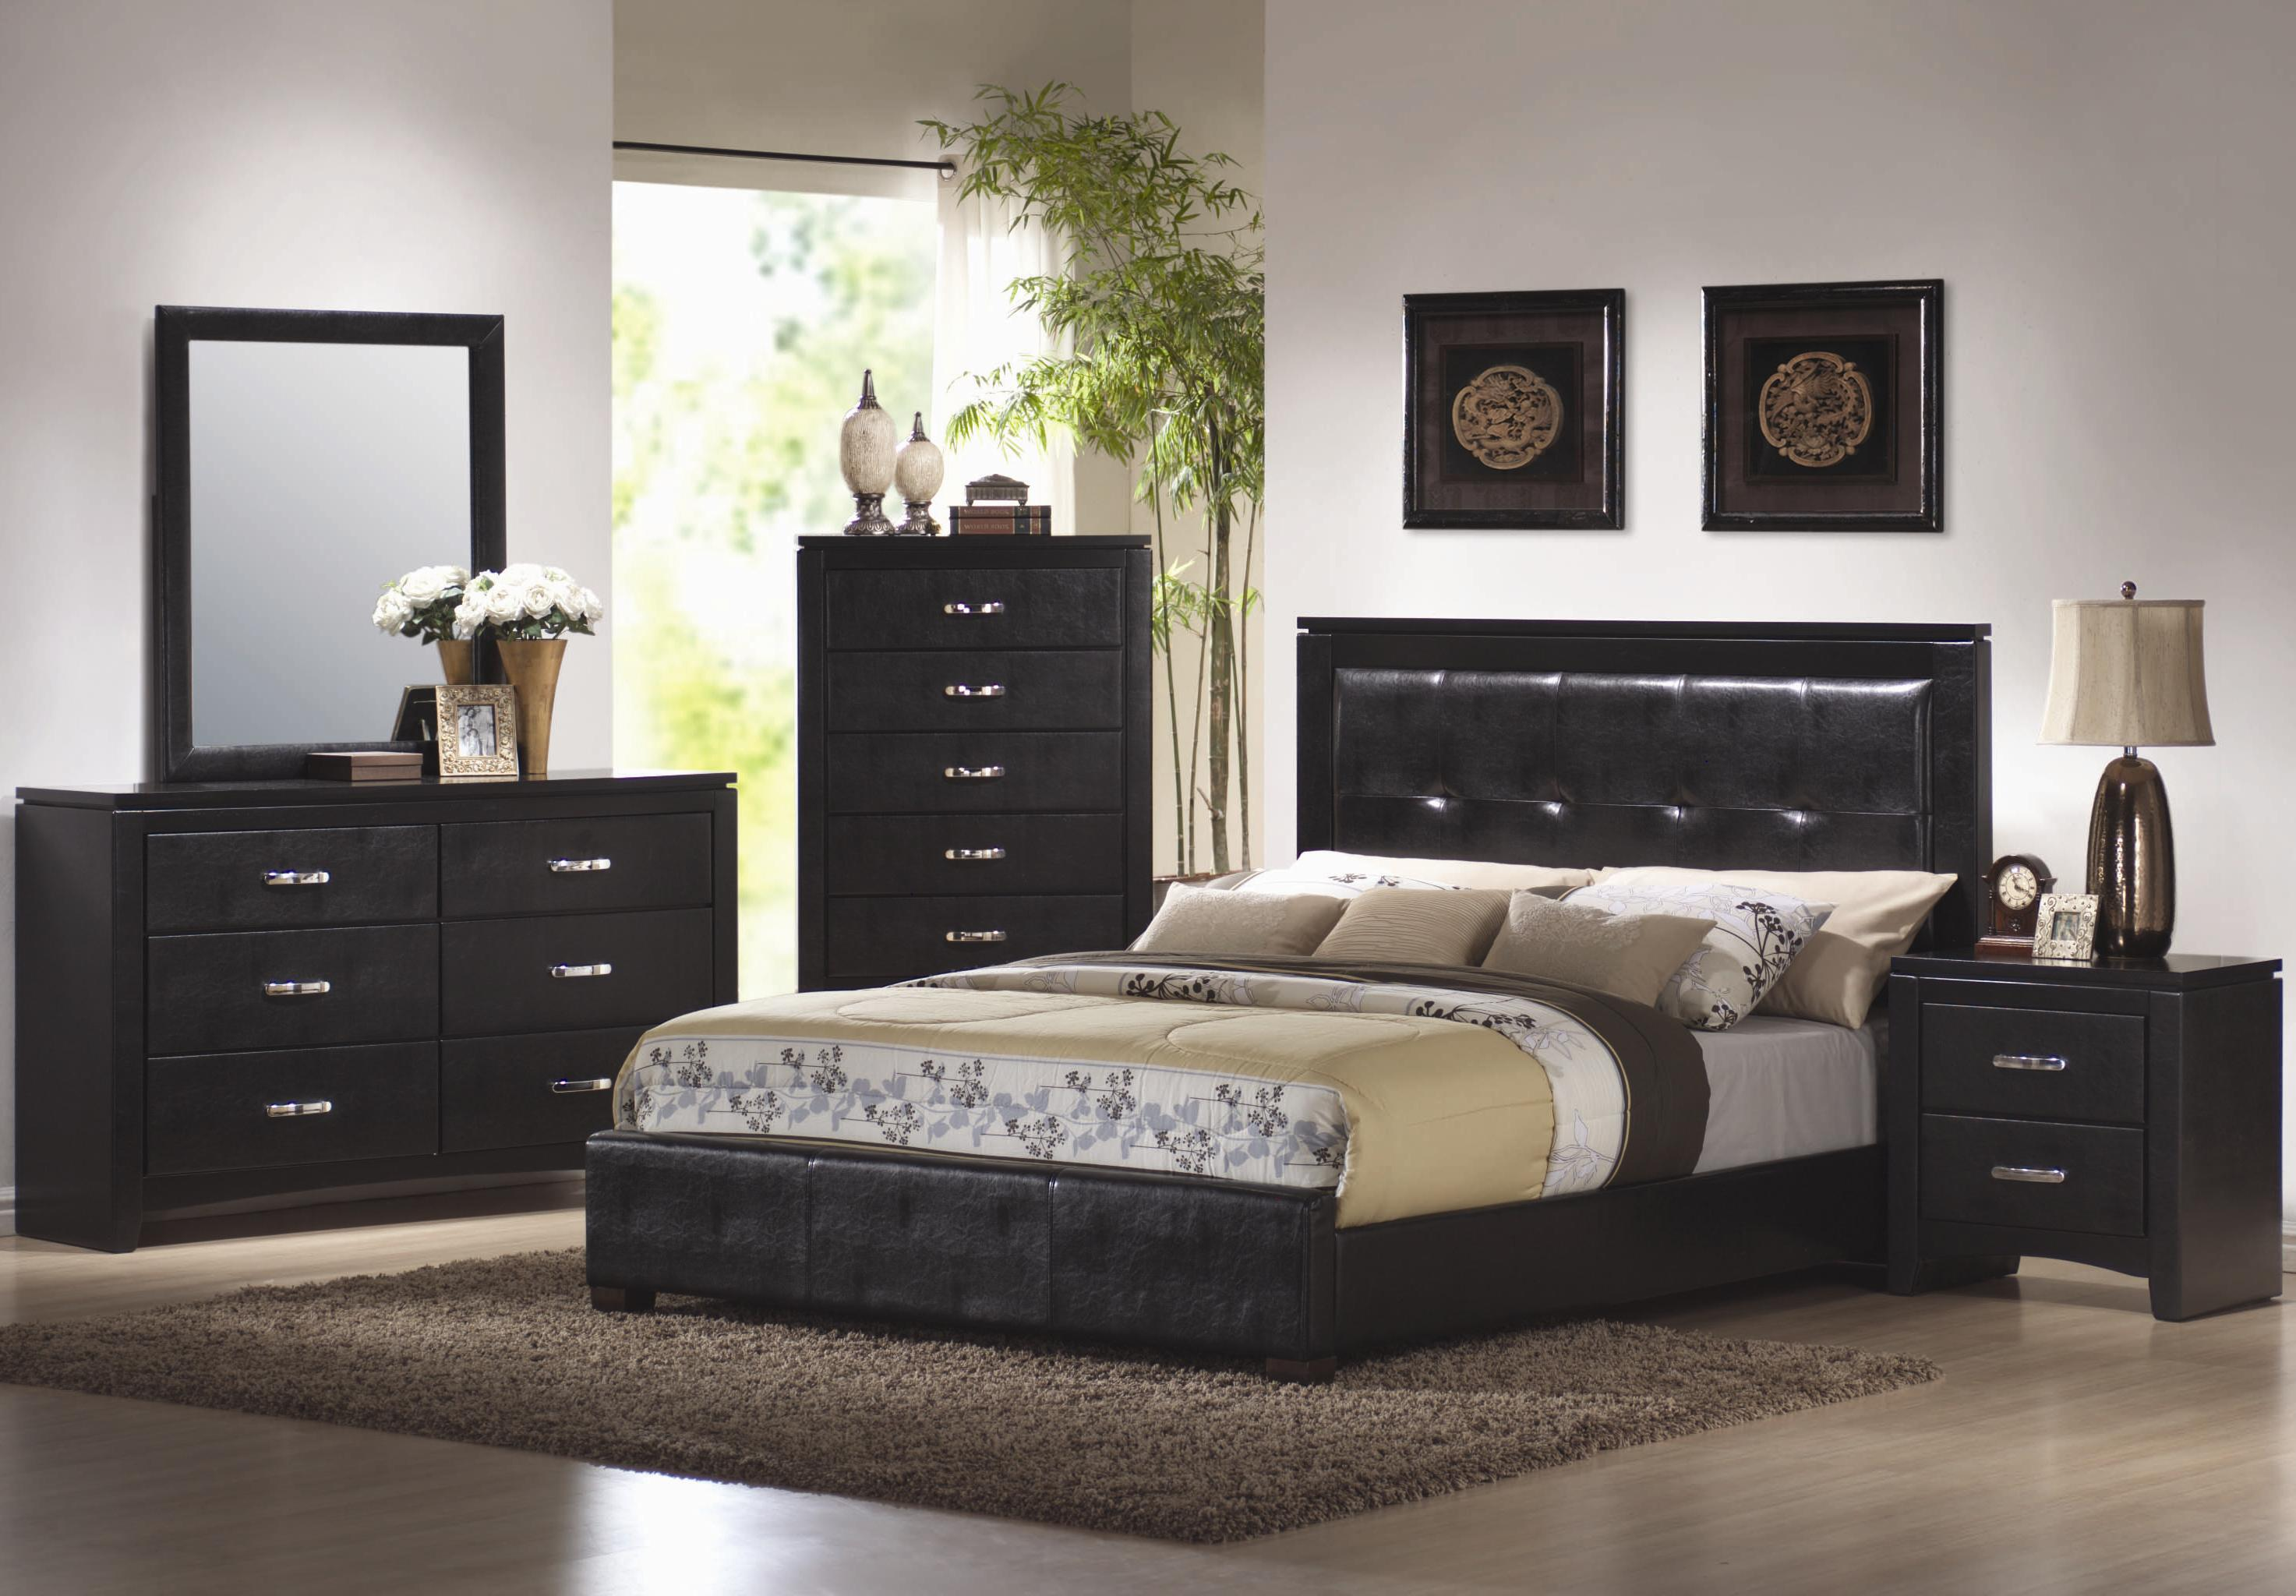 Bdcoa201401 Queen Bedroom Set Reg 1499 90 Now 999 90 Pina Furniture